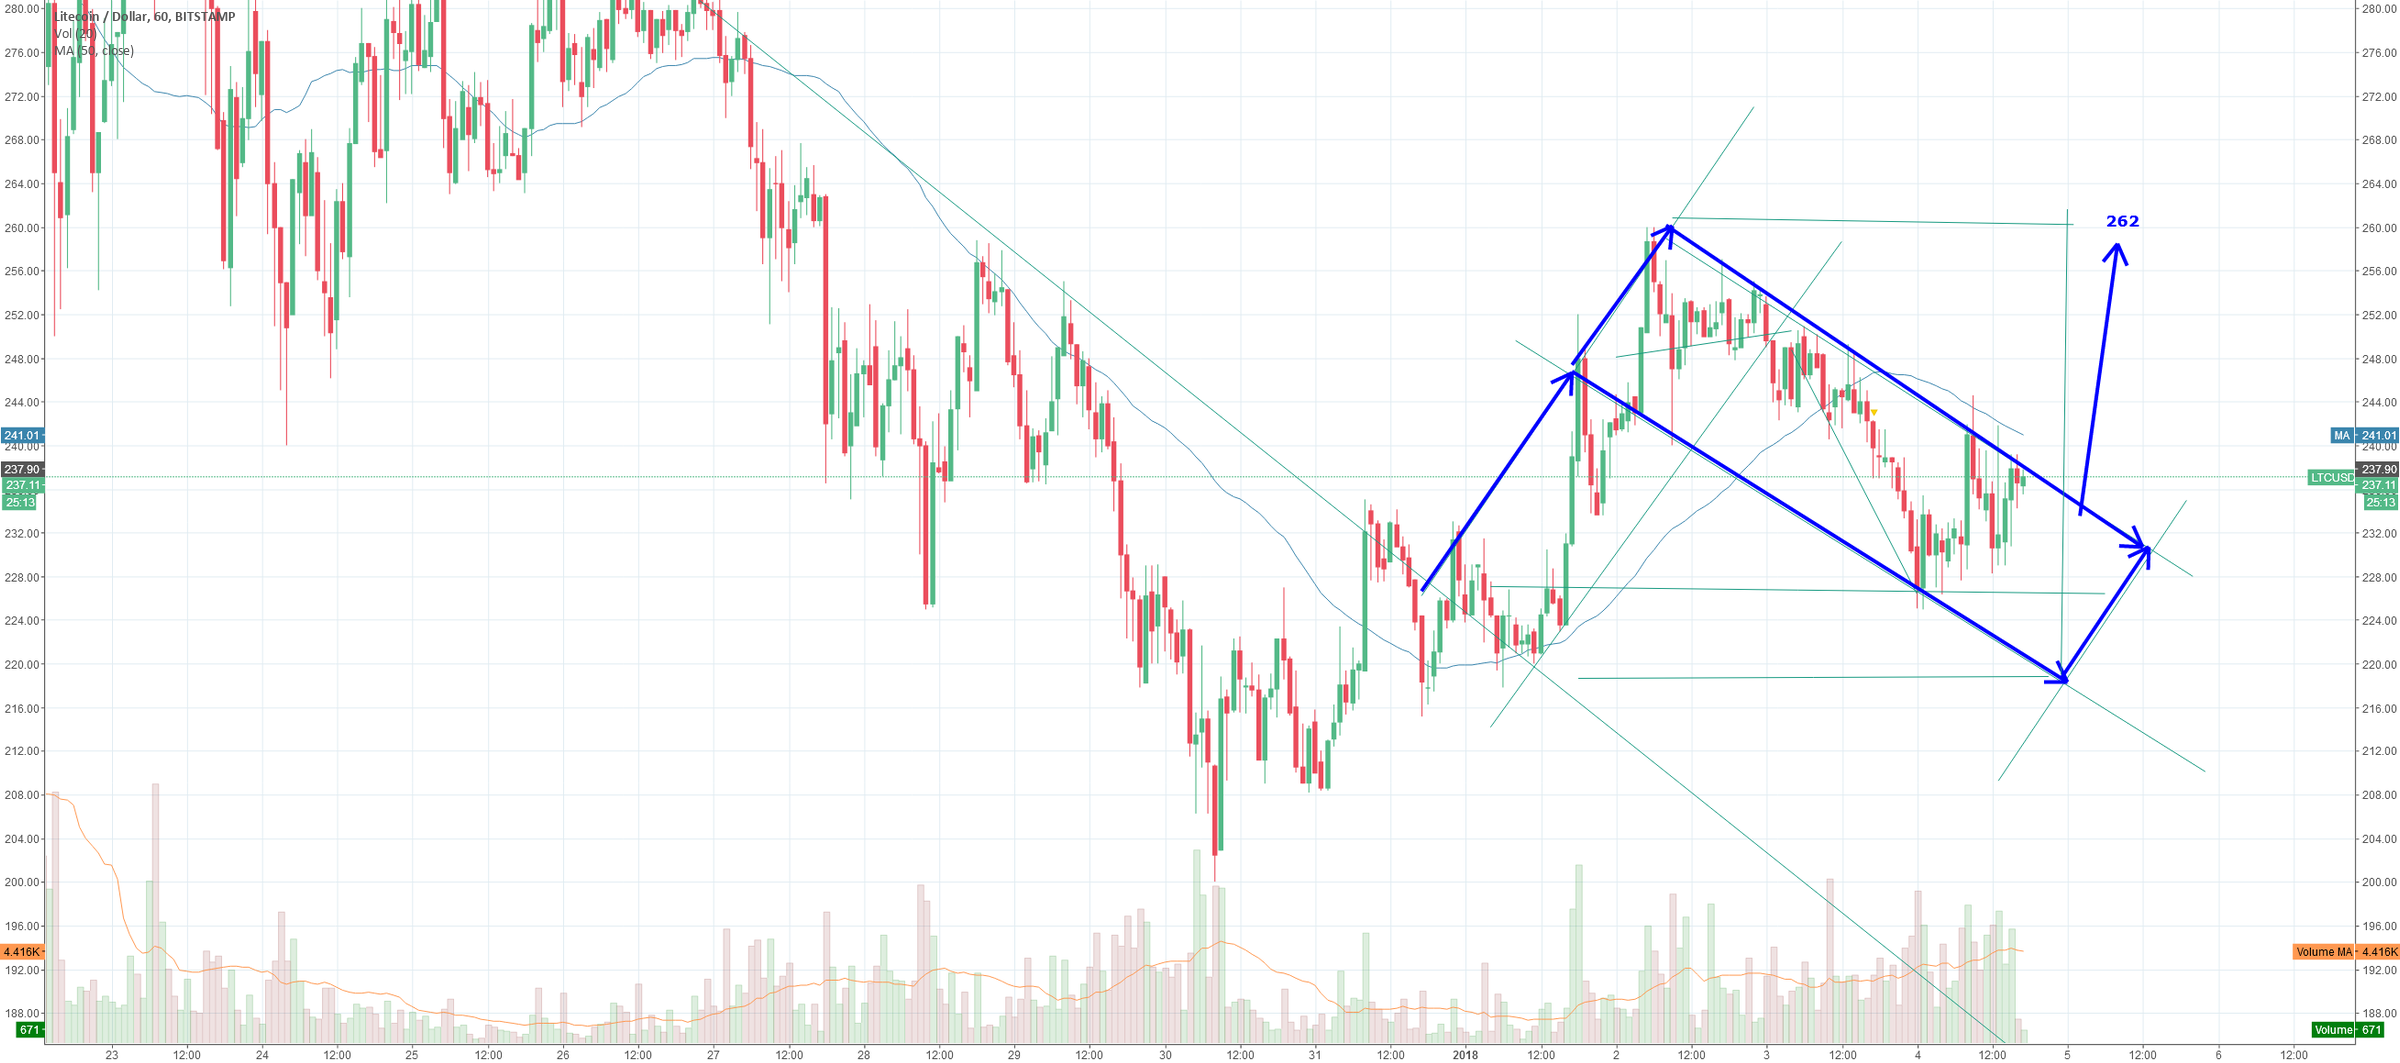 Bull flag on LTC shows 262, valid targets are 280 , 360, 625